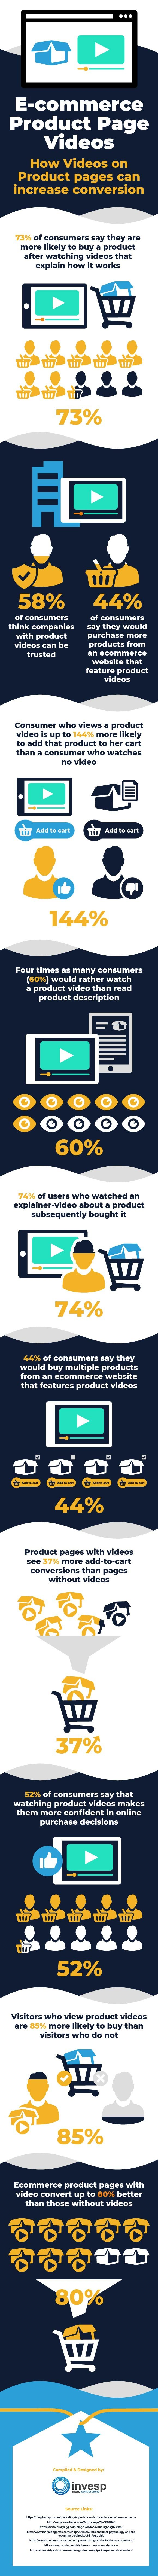 How Videos on Product Pages can Increase eCommerce Conversion [Infographic]